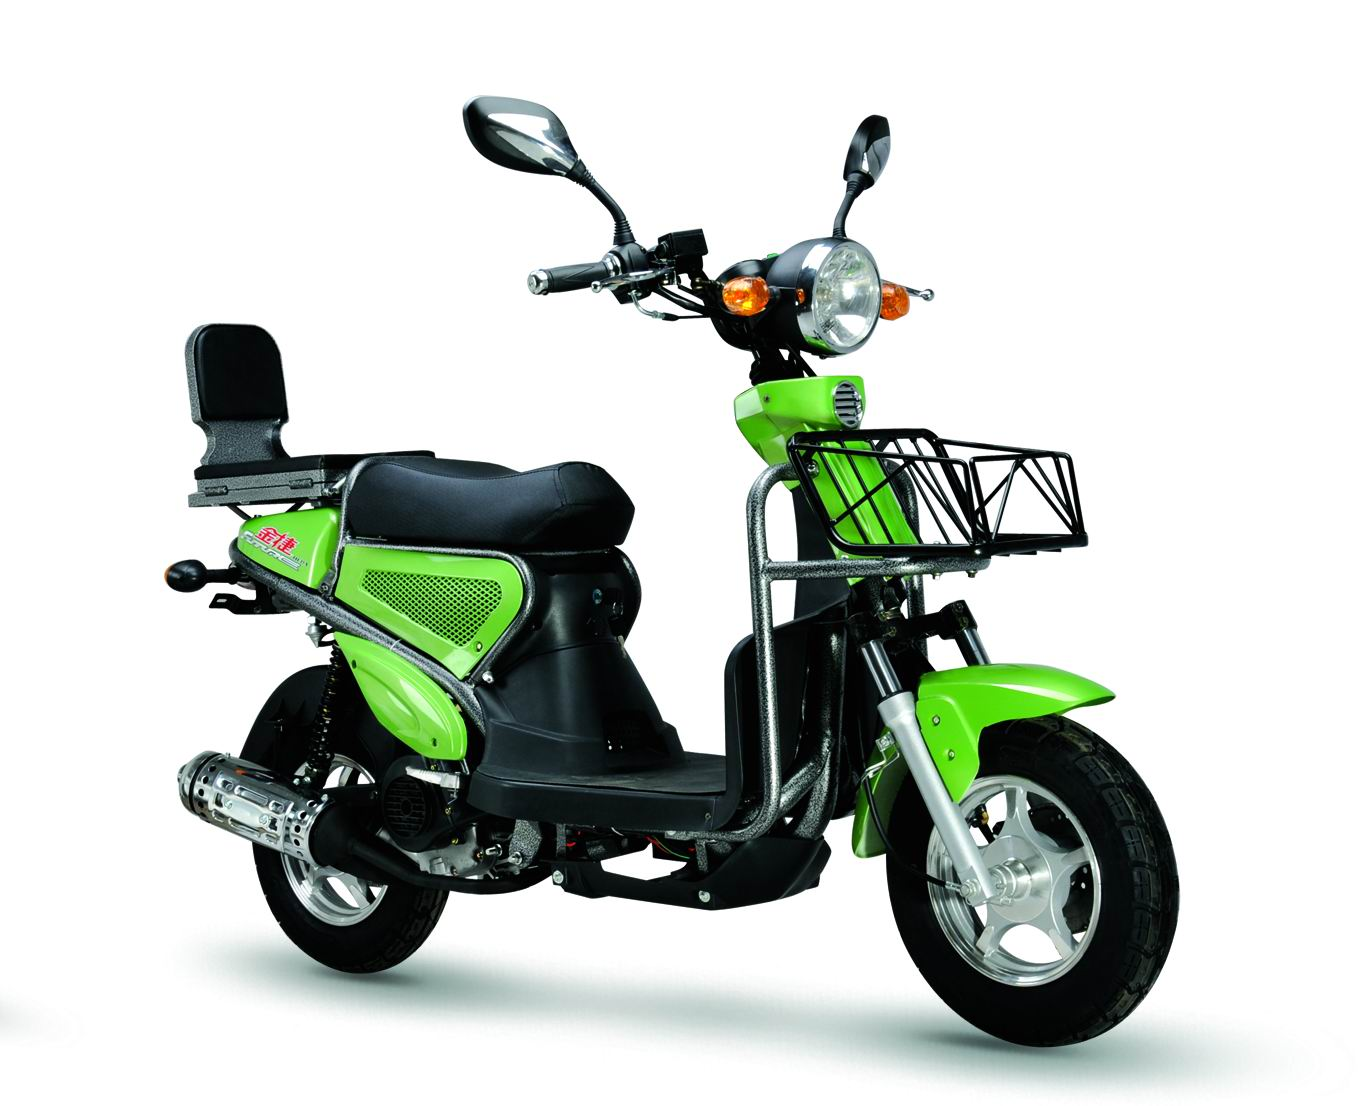 50cc Scooter Wiring Diagram On Honda Mopeds 50cc Wiring Diagram